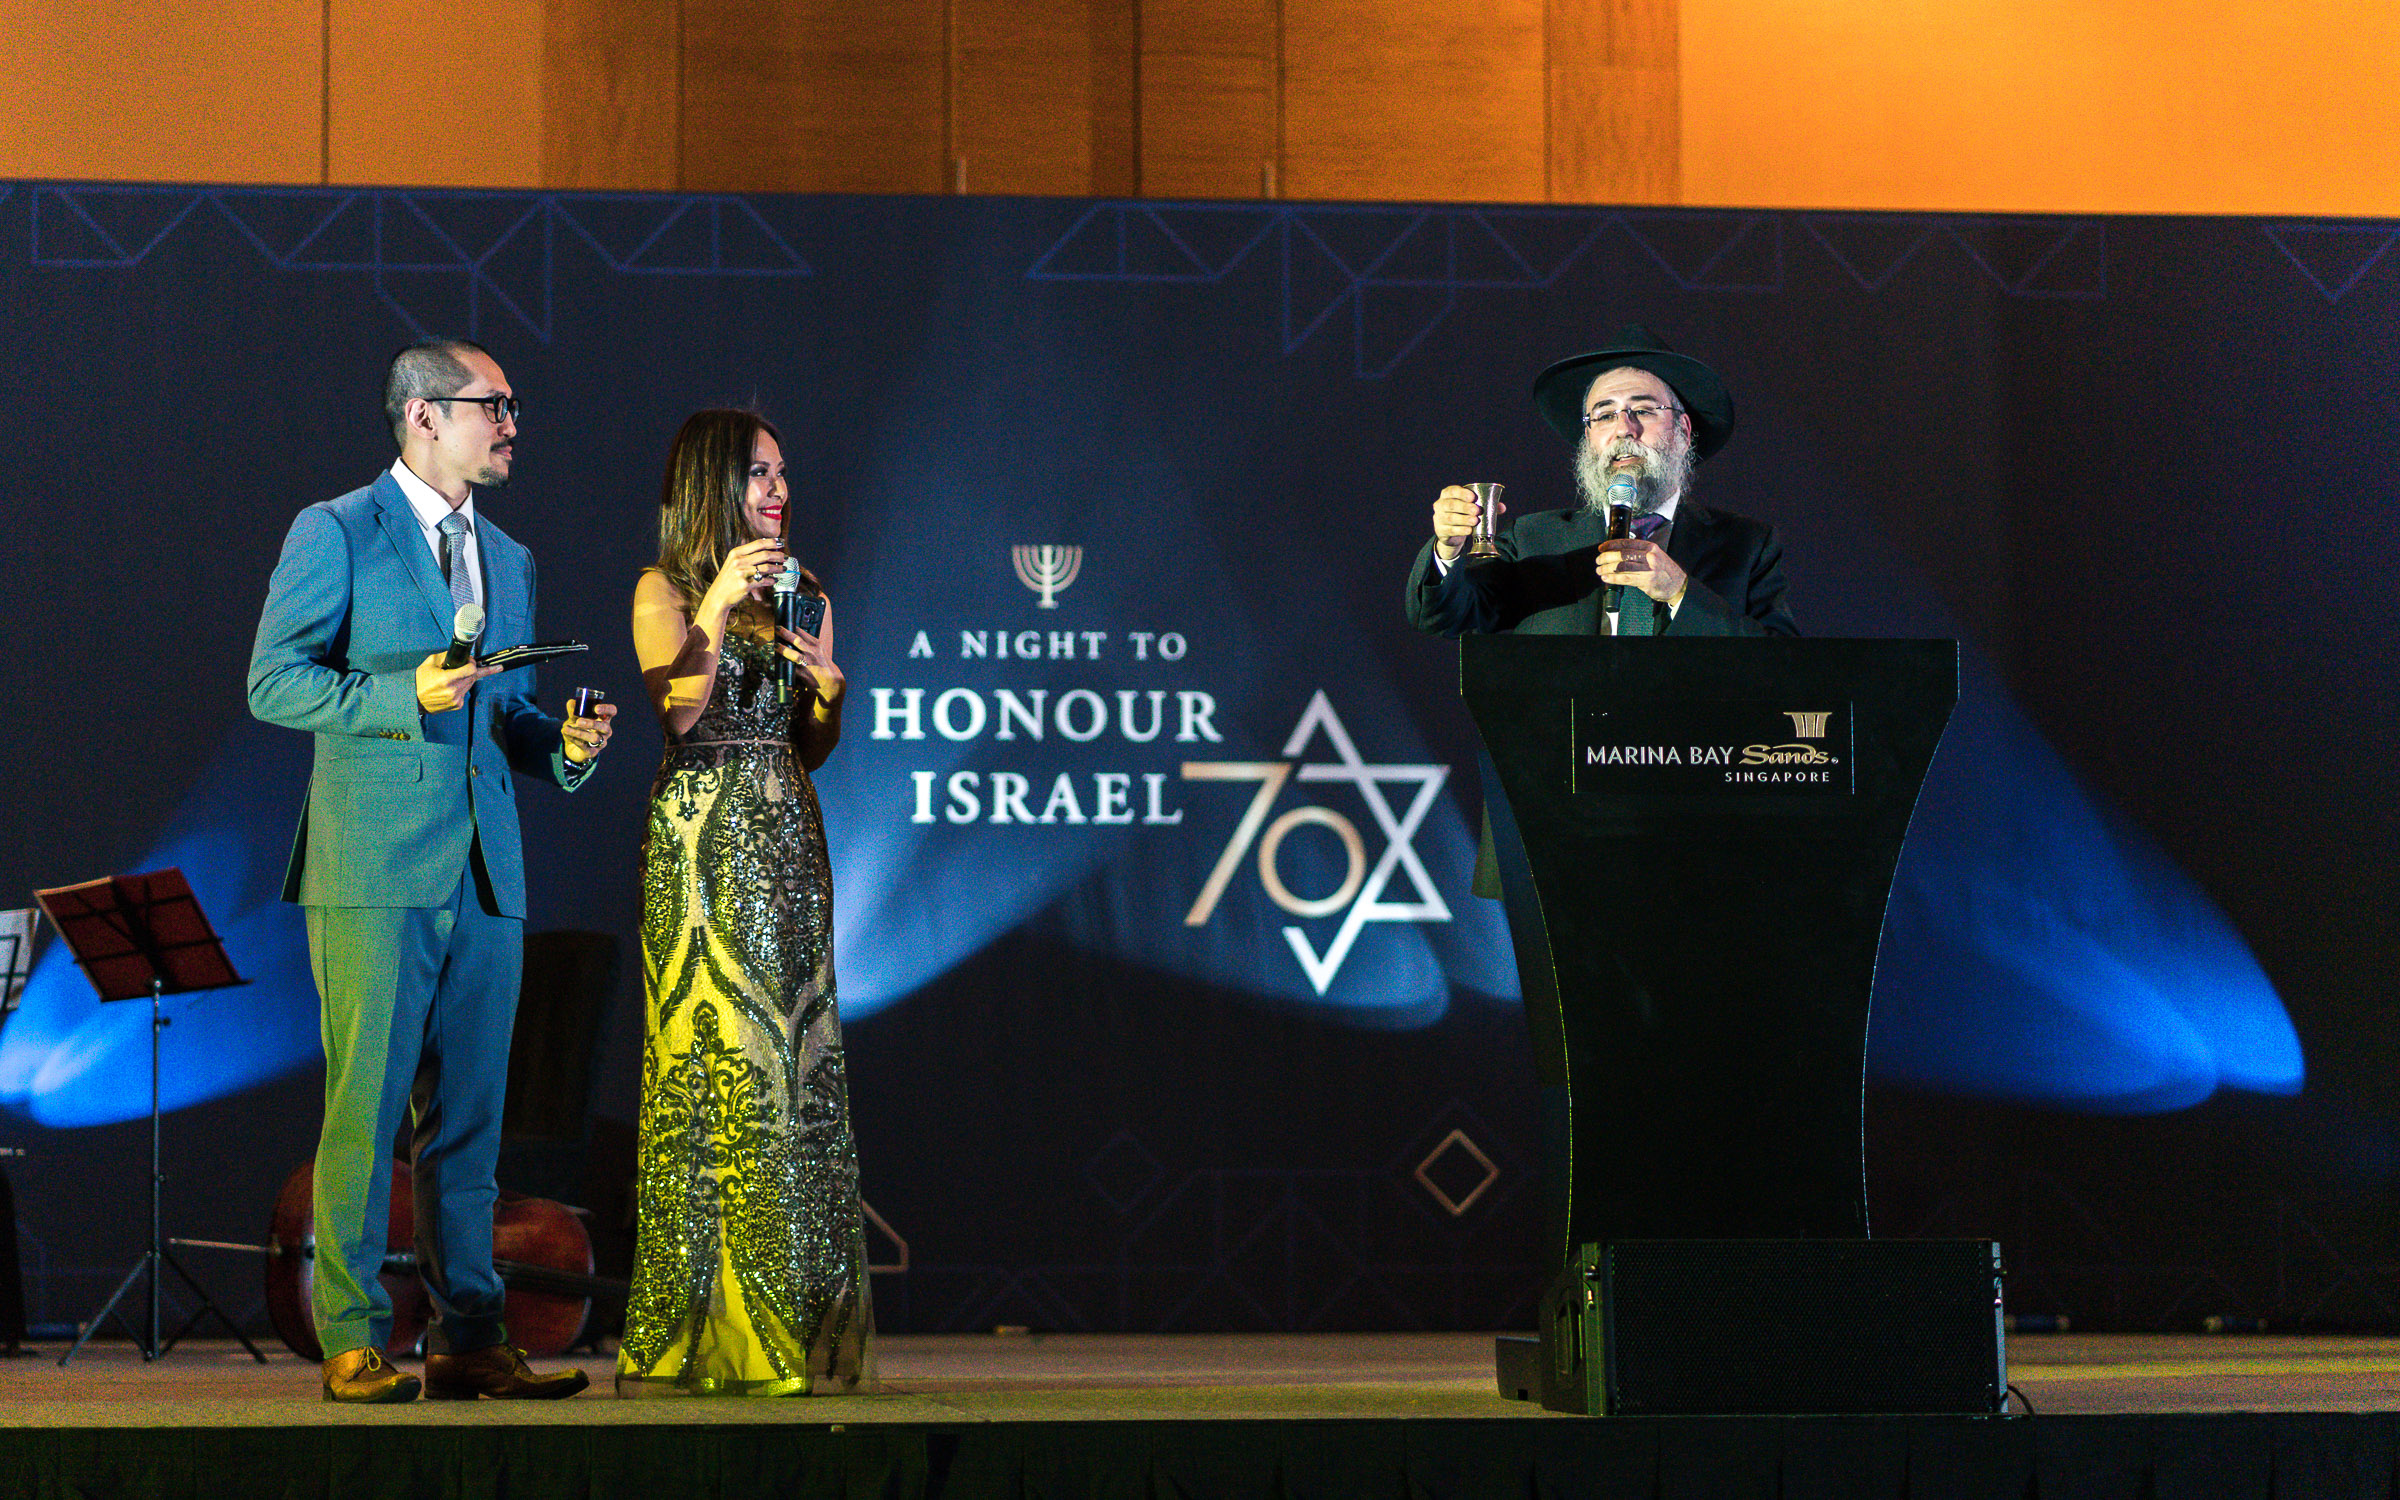 A Night to Honor Israel 2018